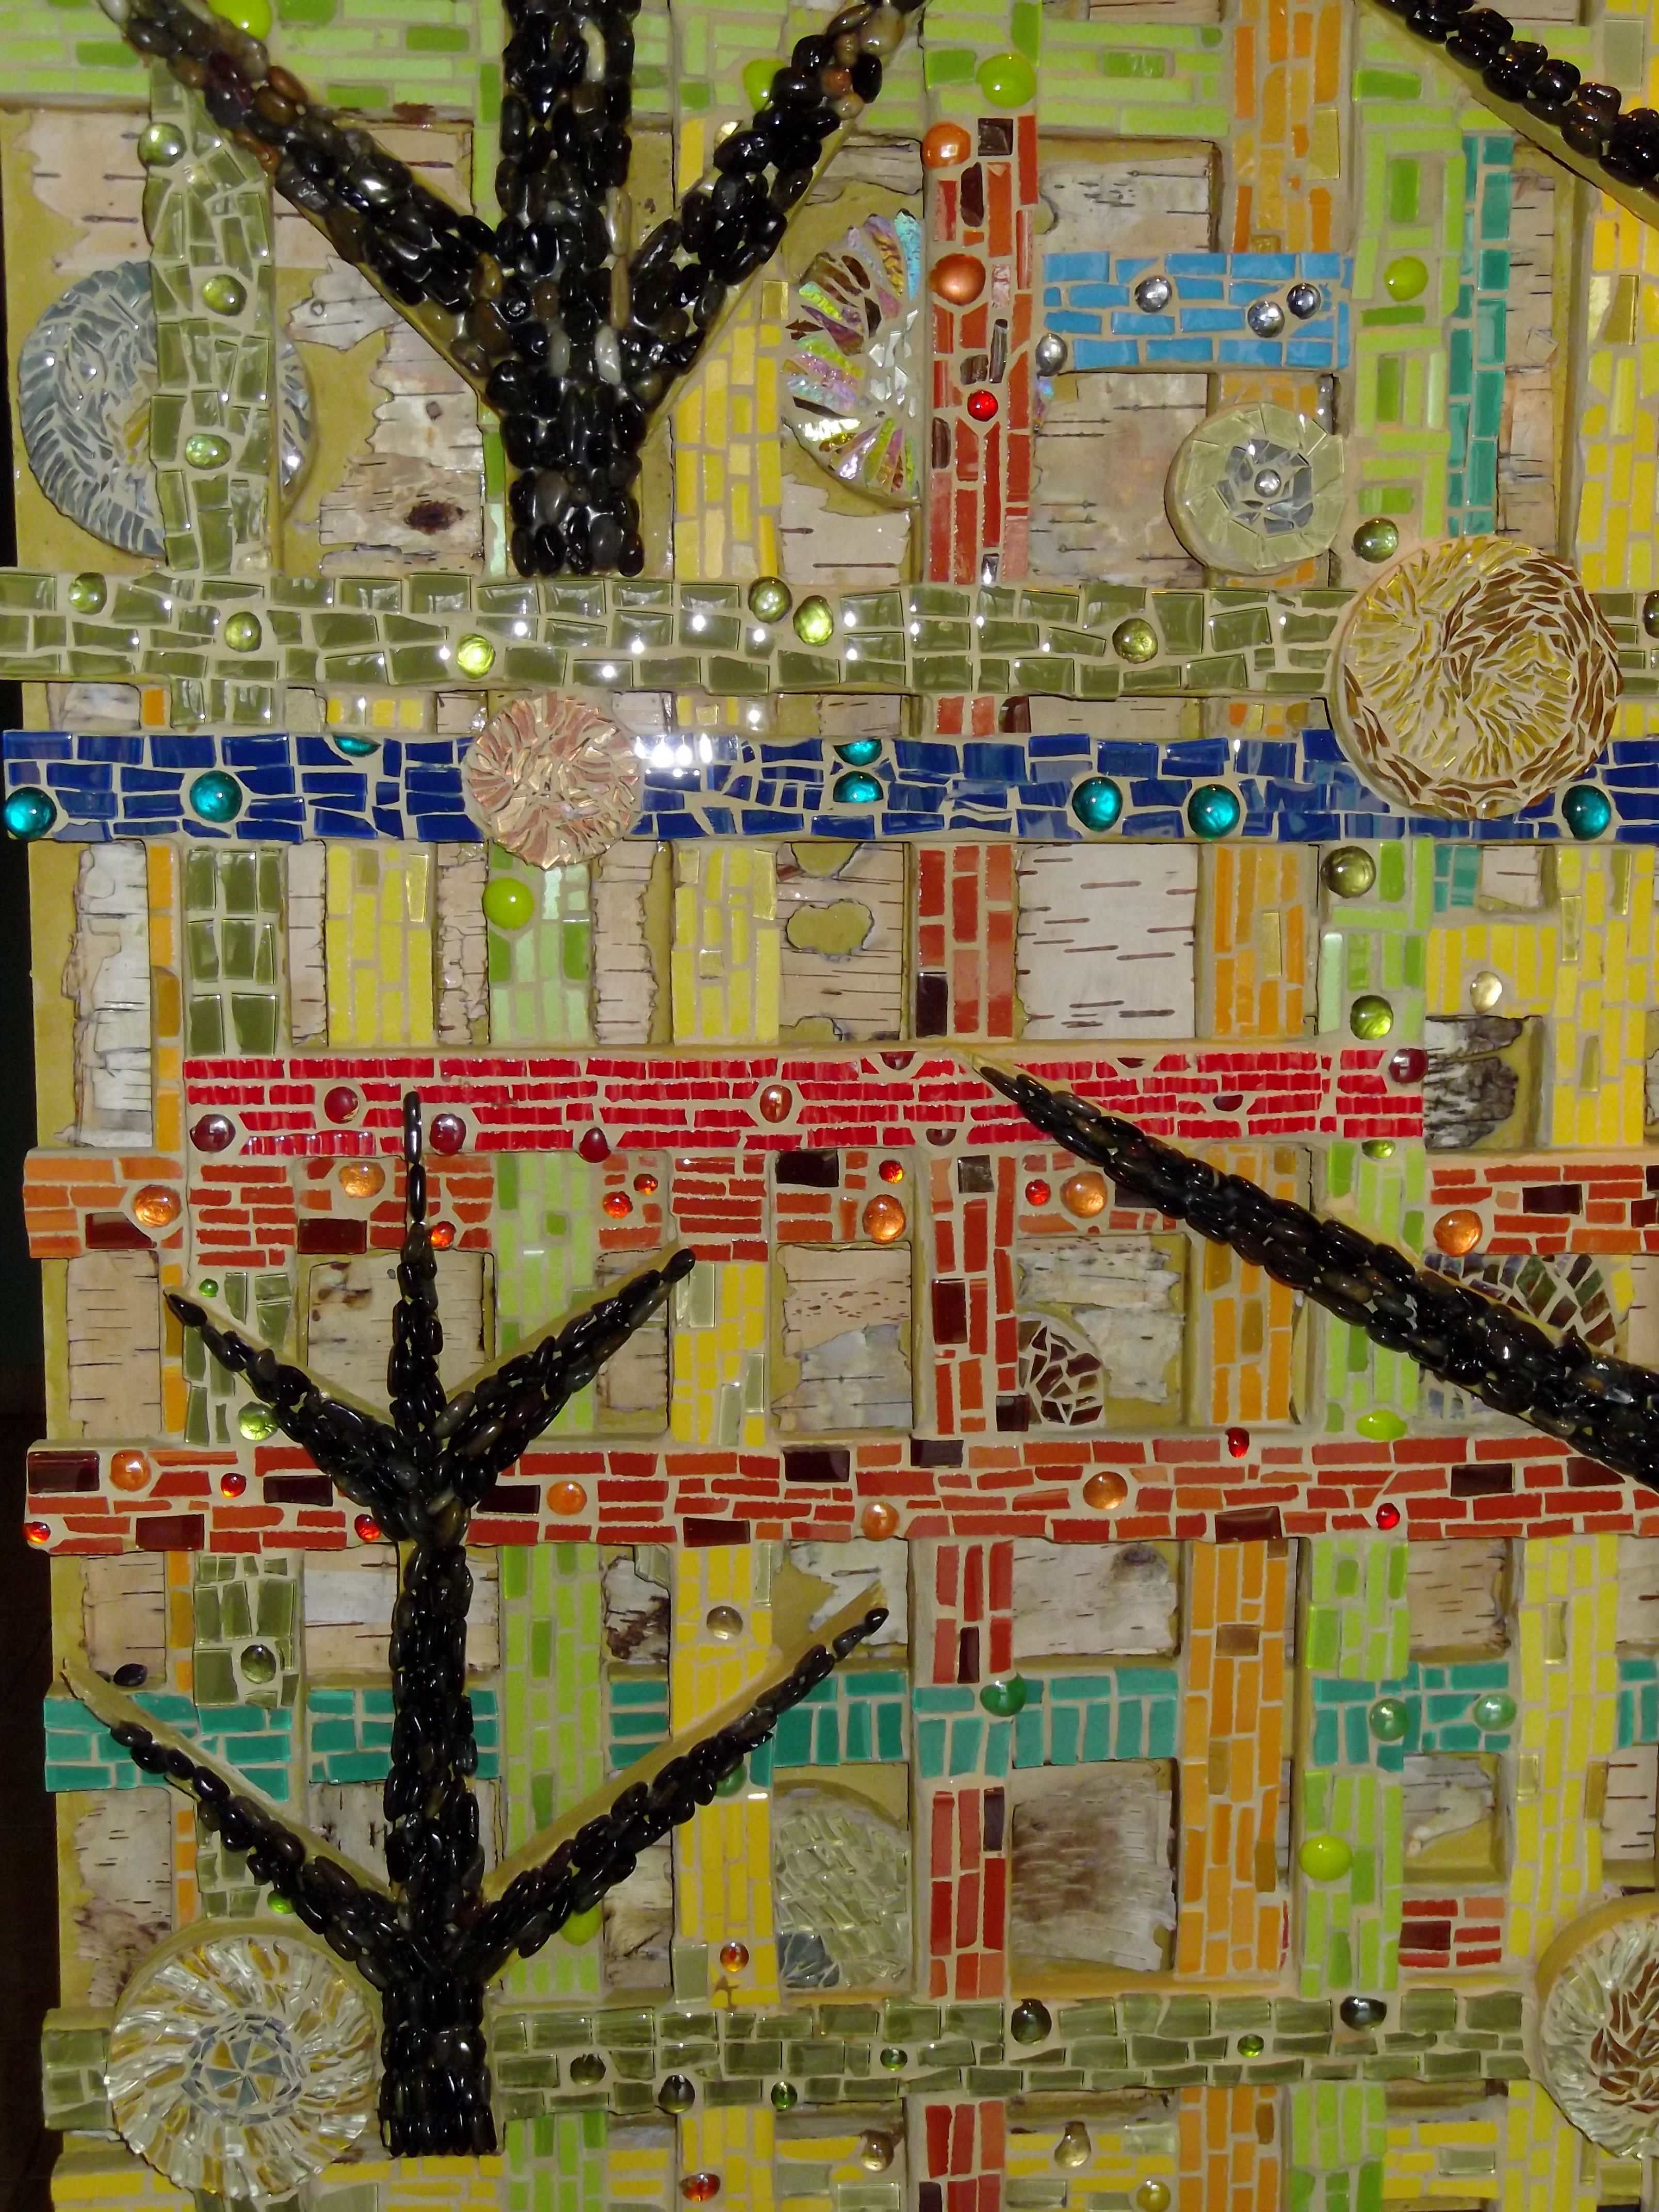 [Image description: A photograph of a mixed media abstract piece of art made of mosaic tiles and other 3-D pieces]